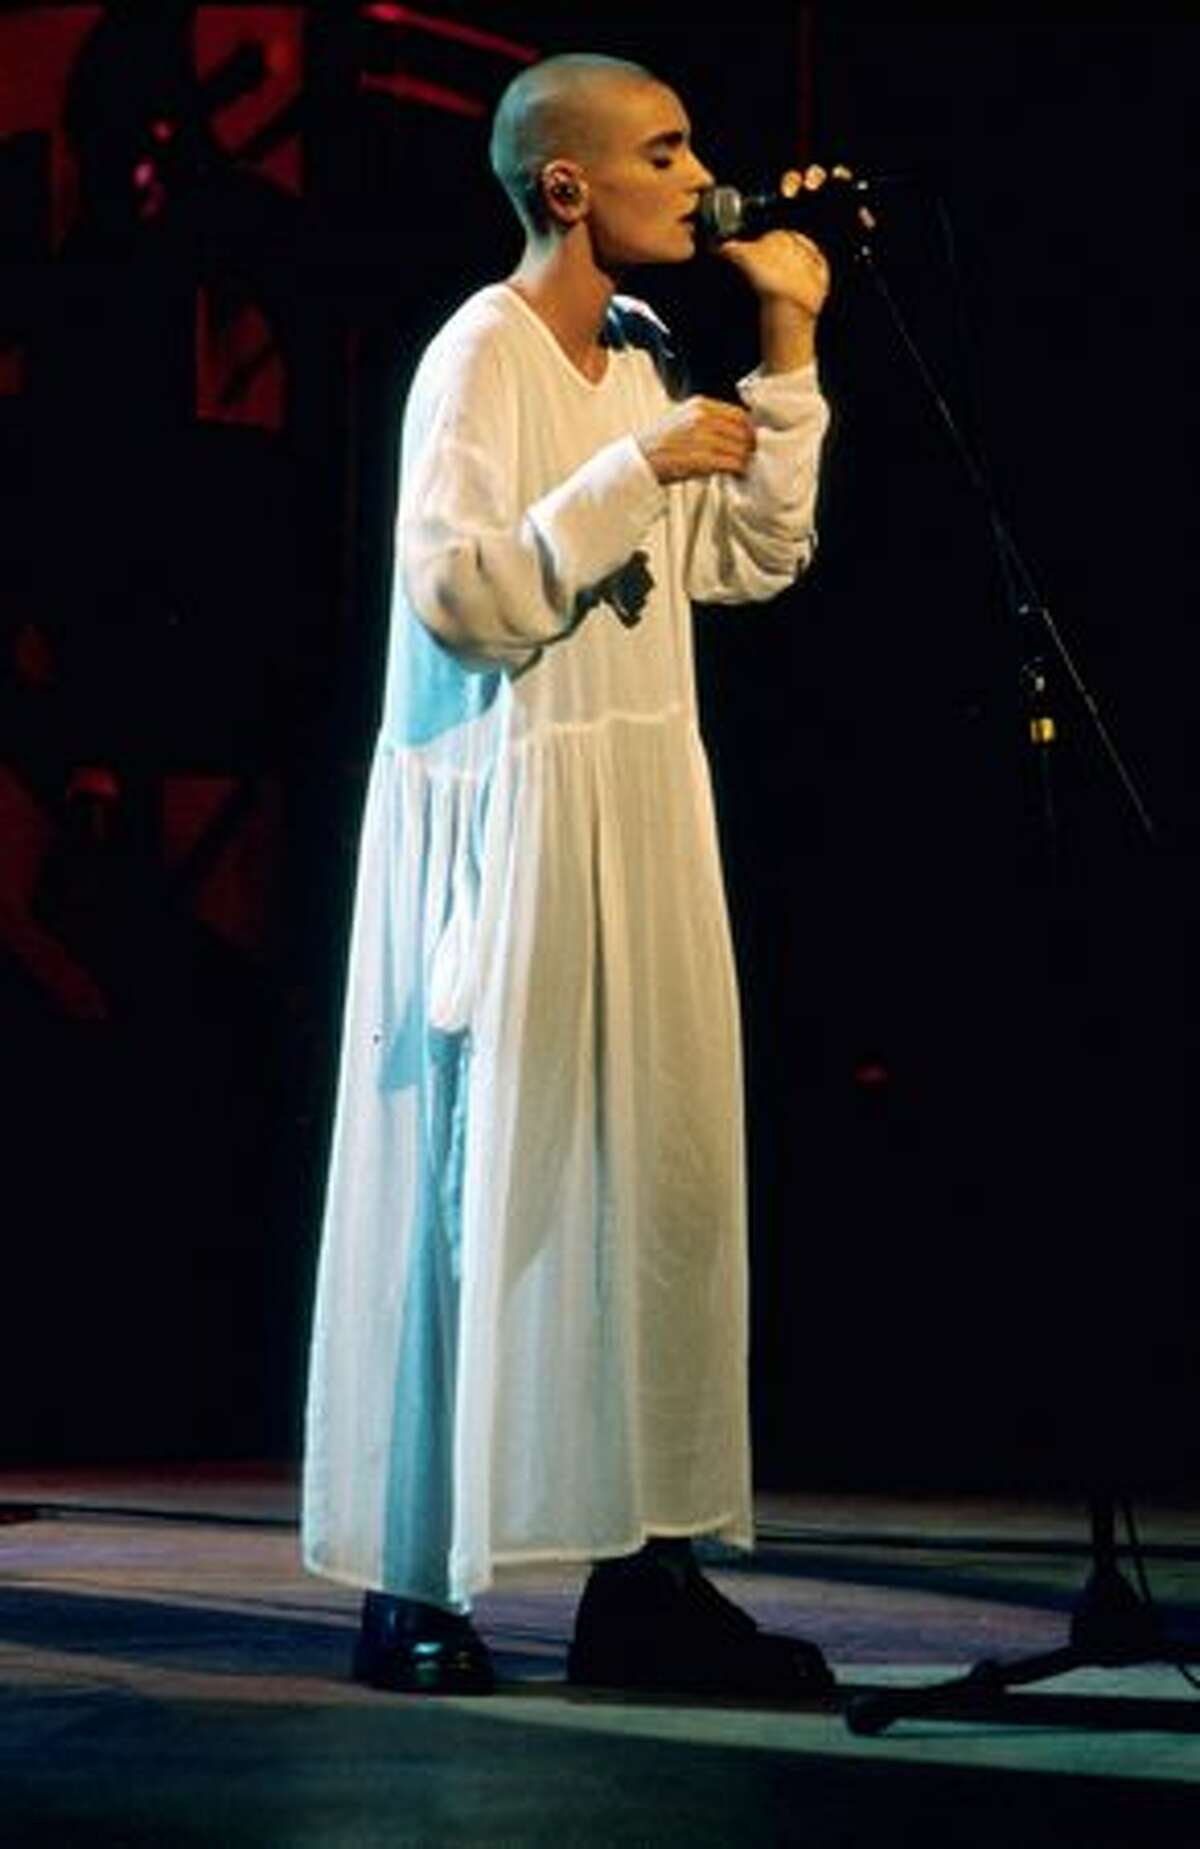 Sinead O'Connor performing at the 1990 MTV Music Video Awards, held at Universal Amphitheatre, Los Angeles, on Sept. 6, 1990. (Photo by Frank Micelotta/ImageDirect)